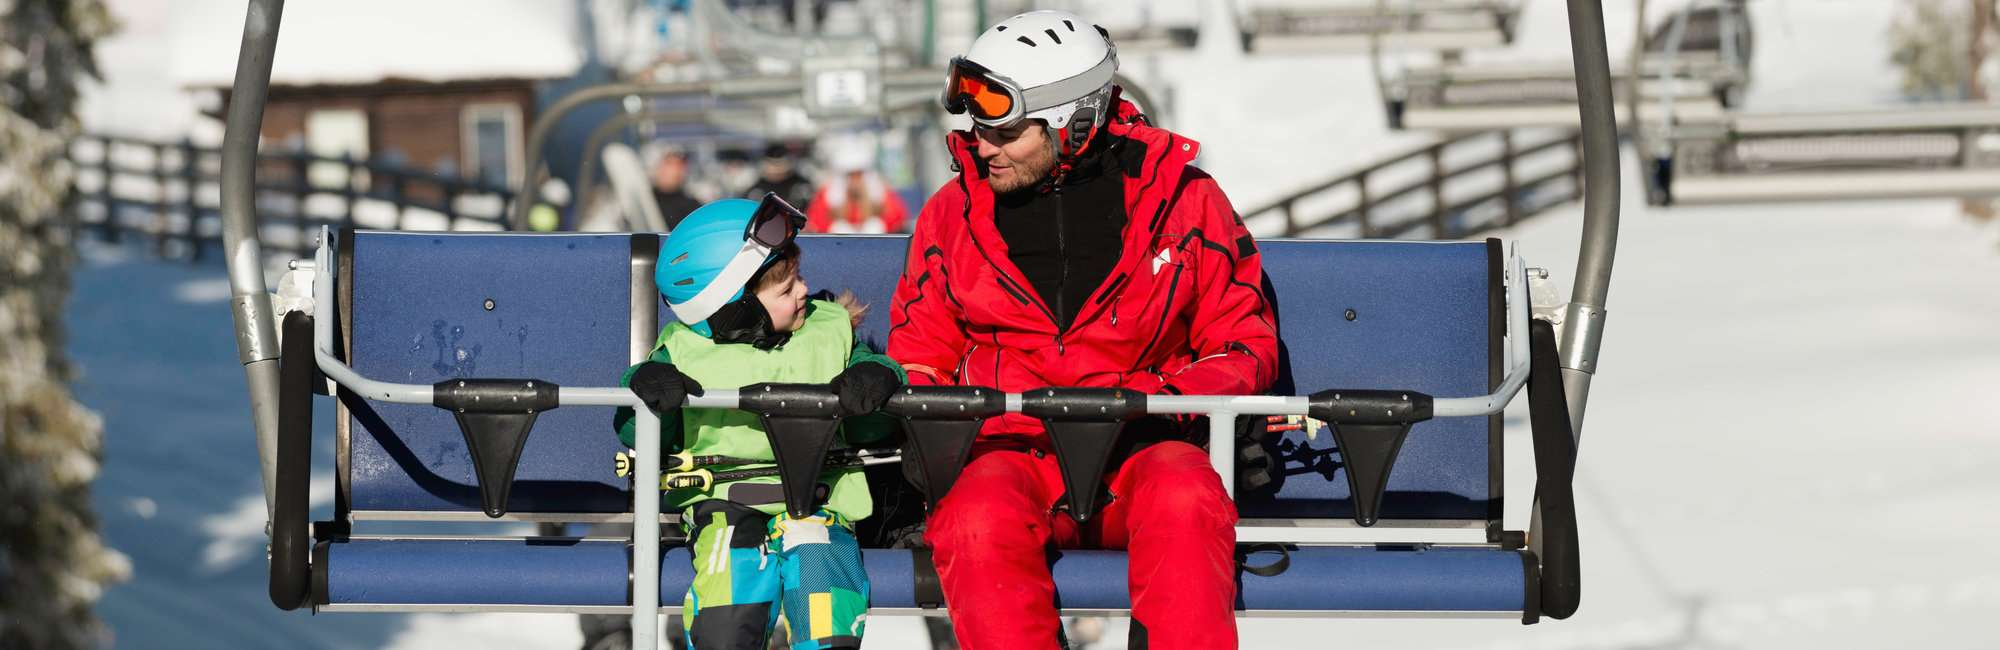 Father and son on ski lift in winter vacation resort